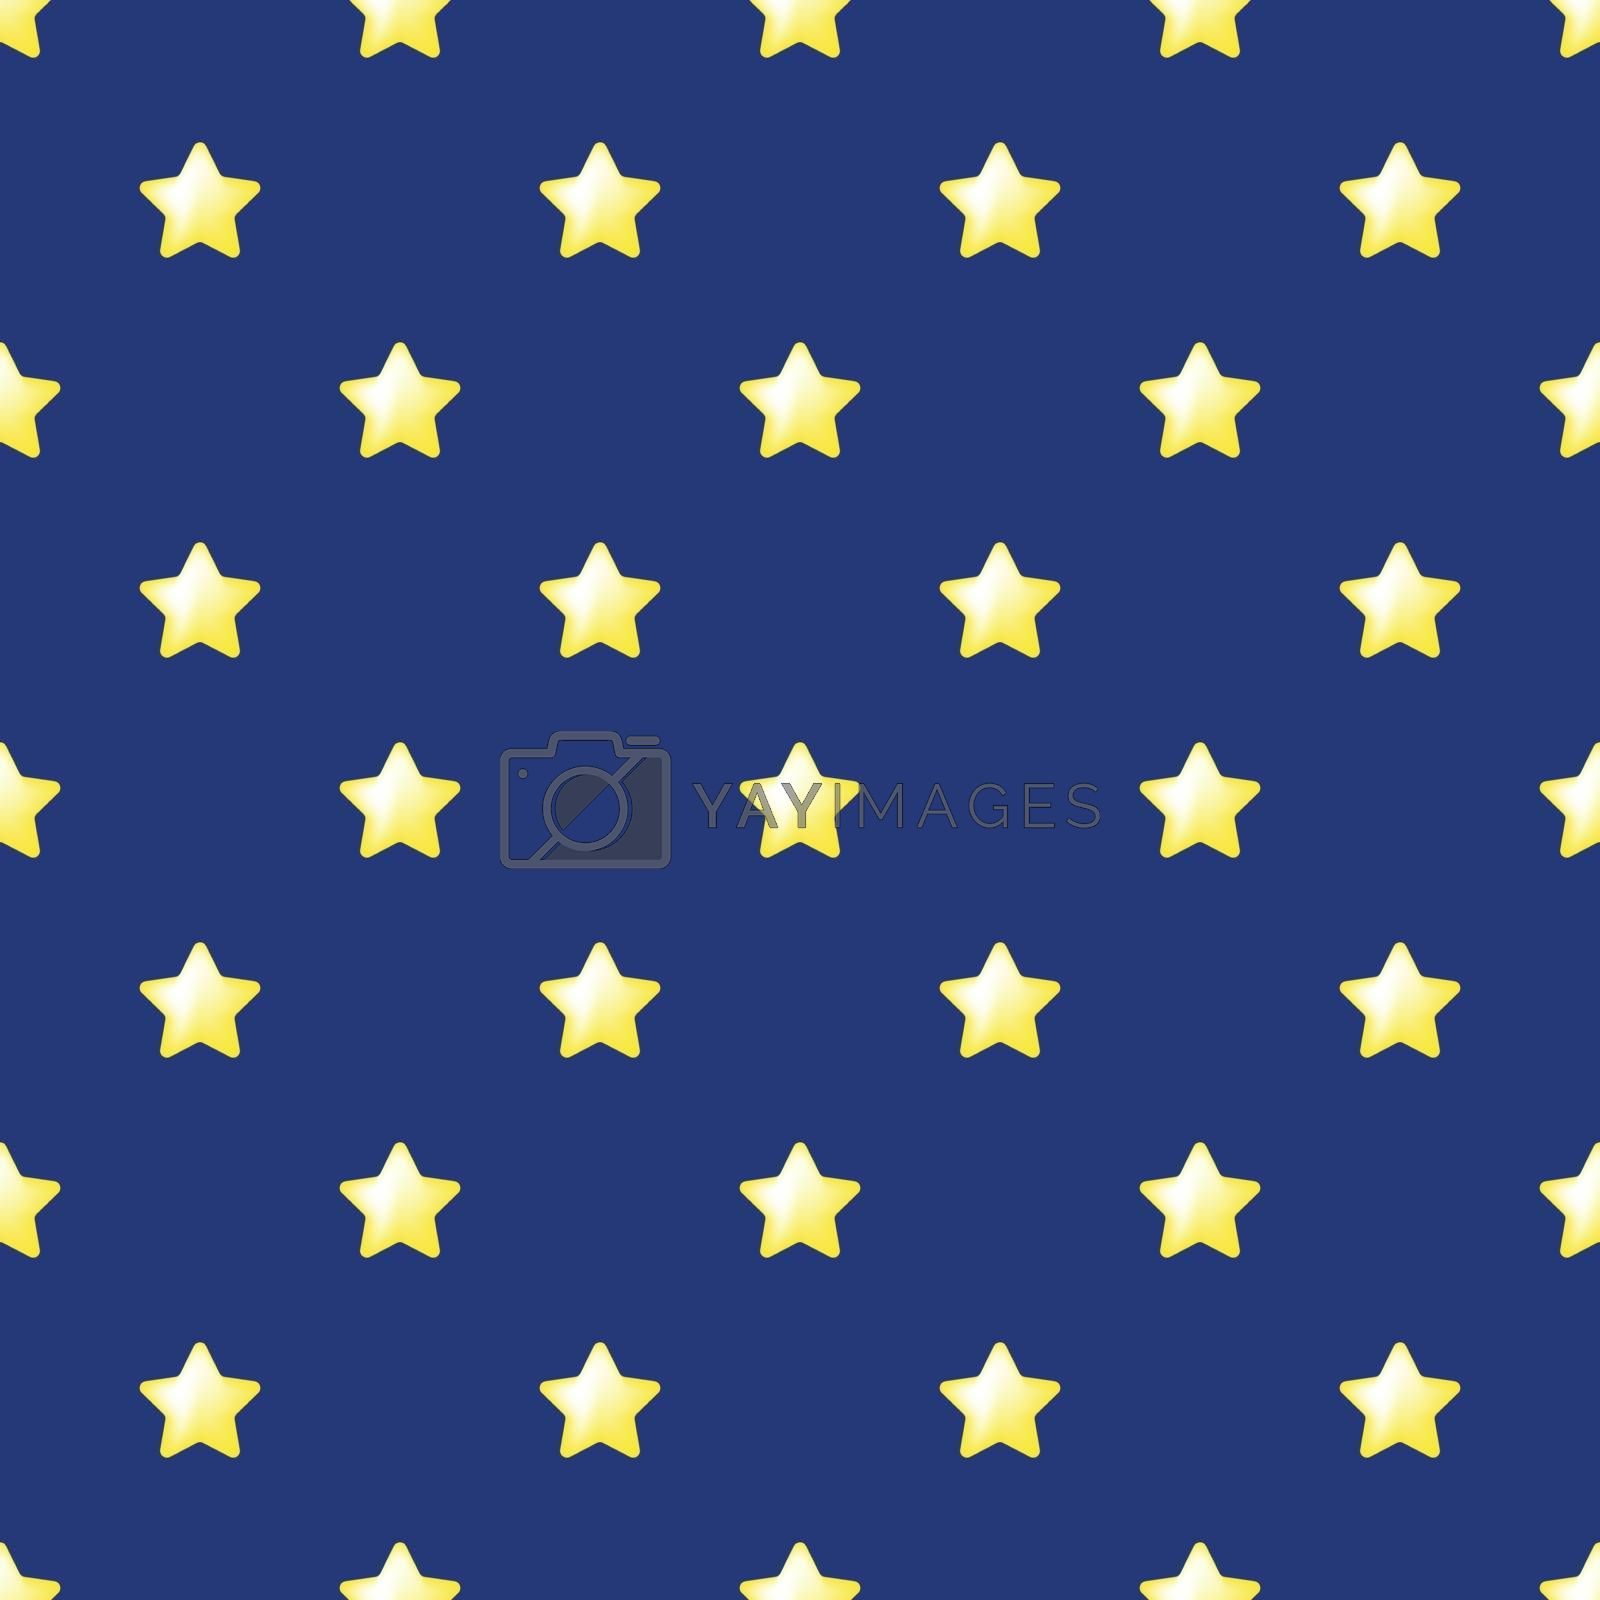 Seamless stars pattern vector. Yellow stars on blue background. Flat simple style for any web design or textile